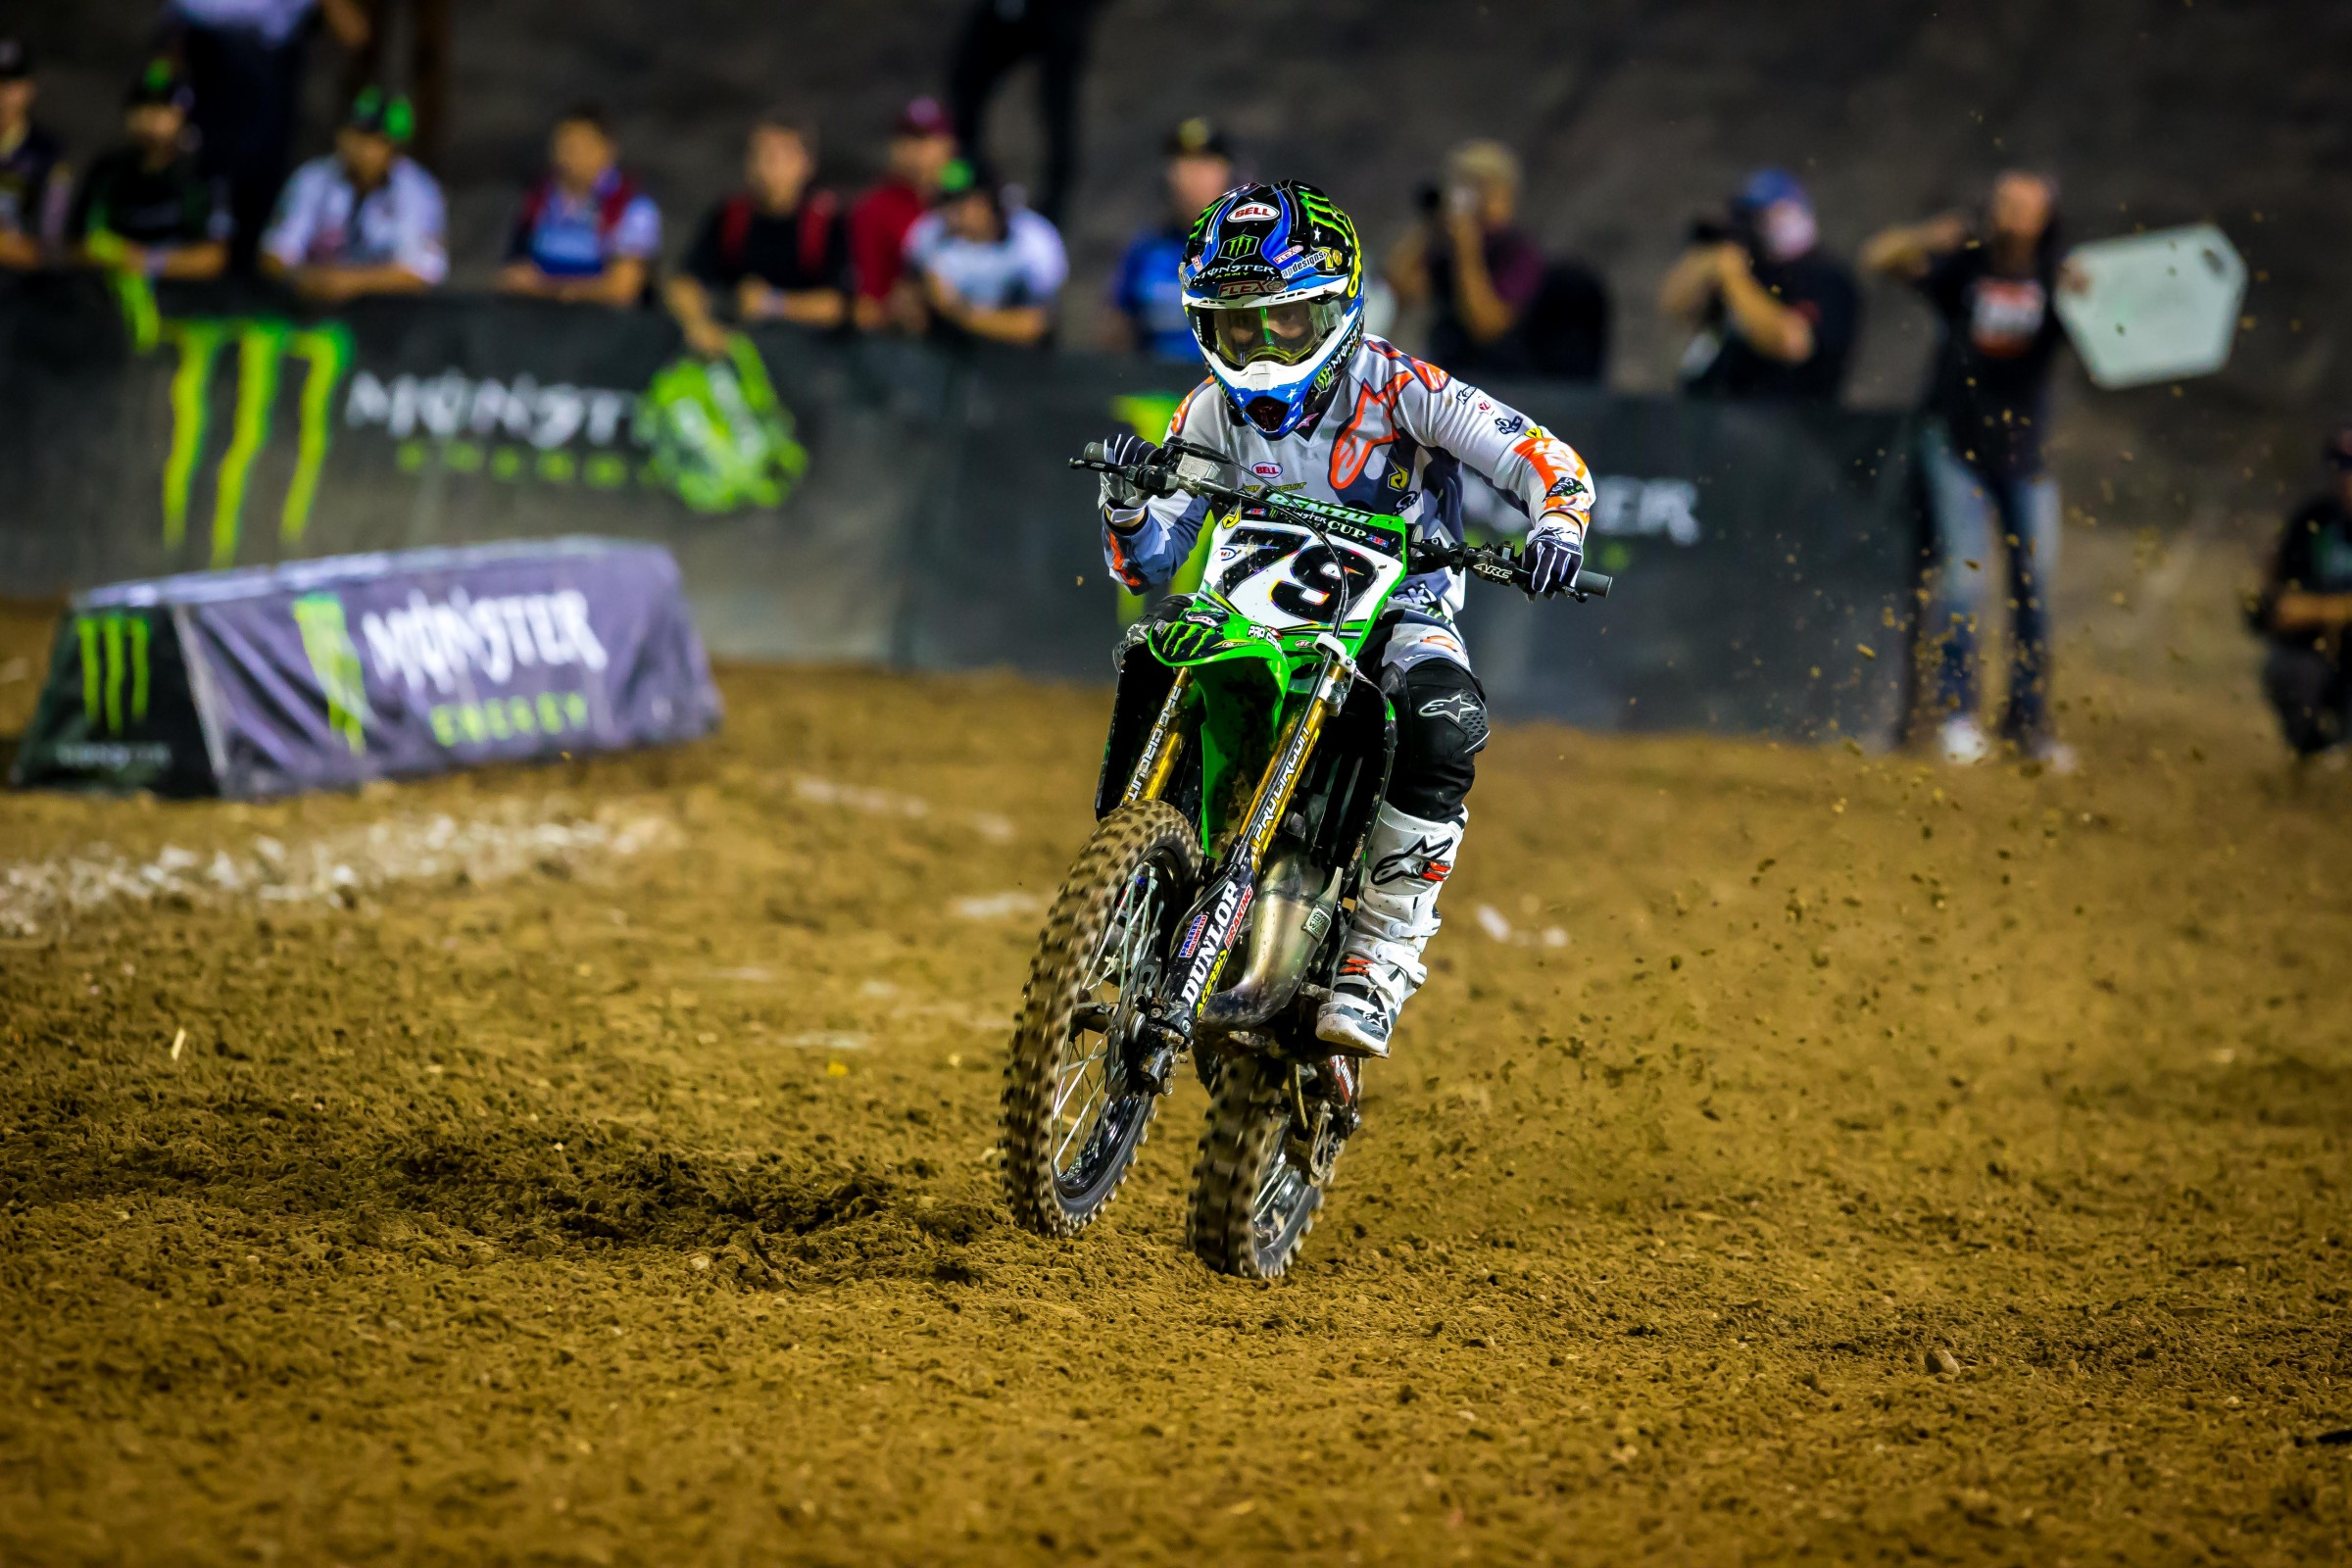 Jett Reynolds won the Supermini class.